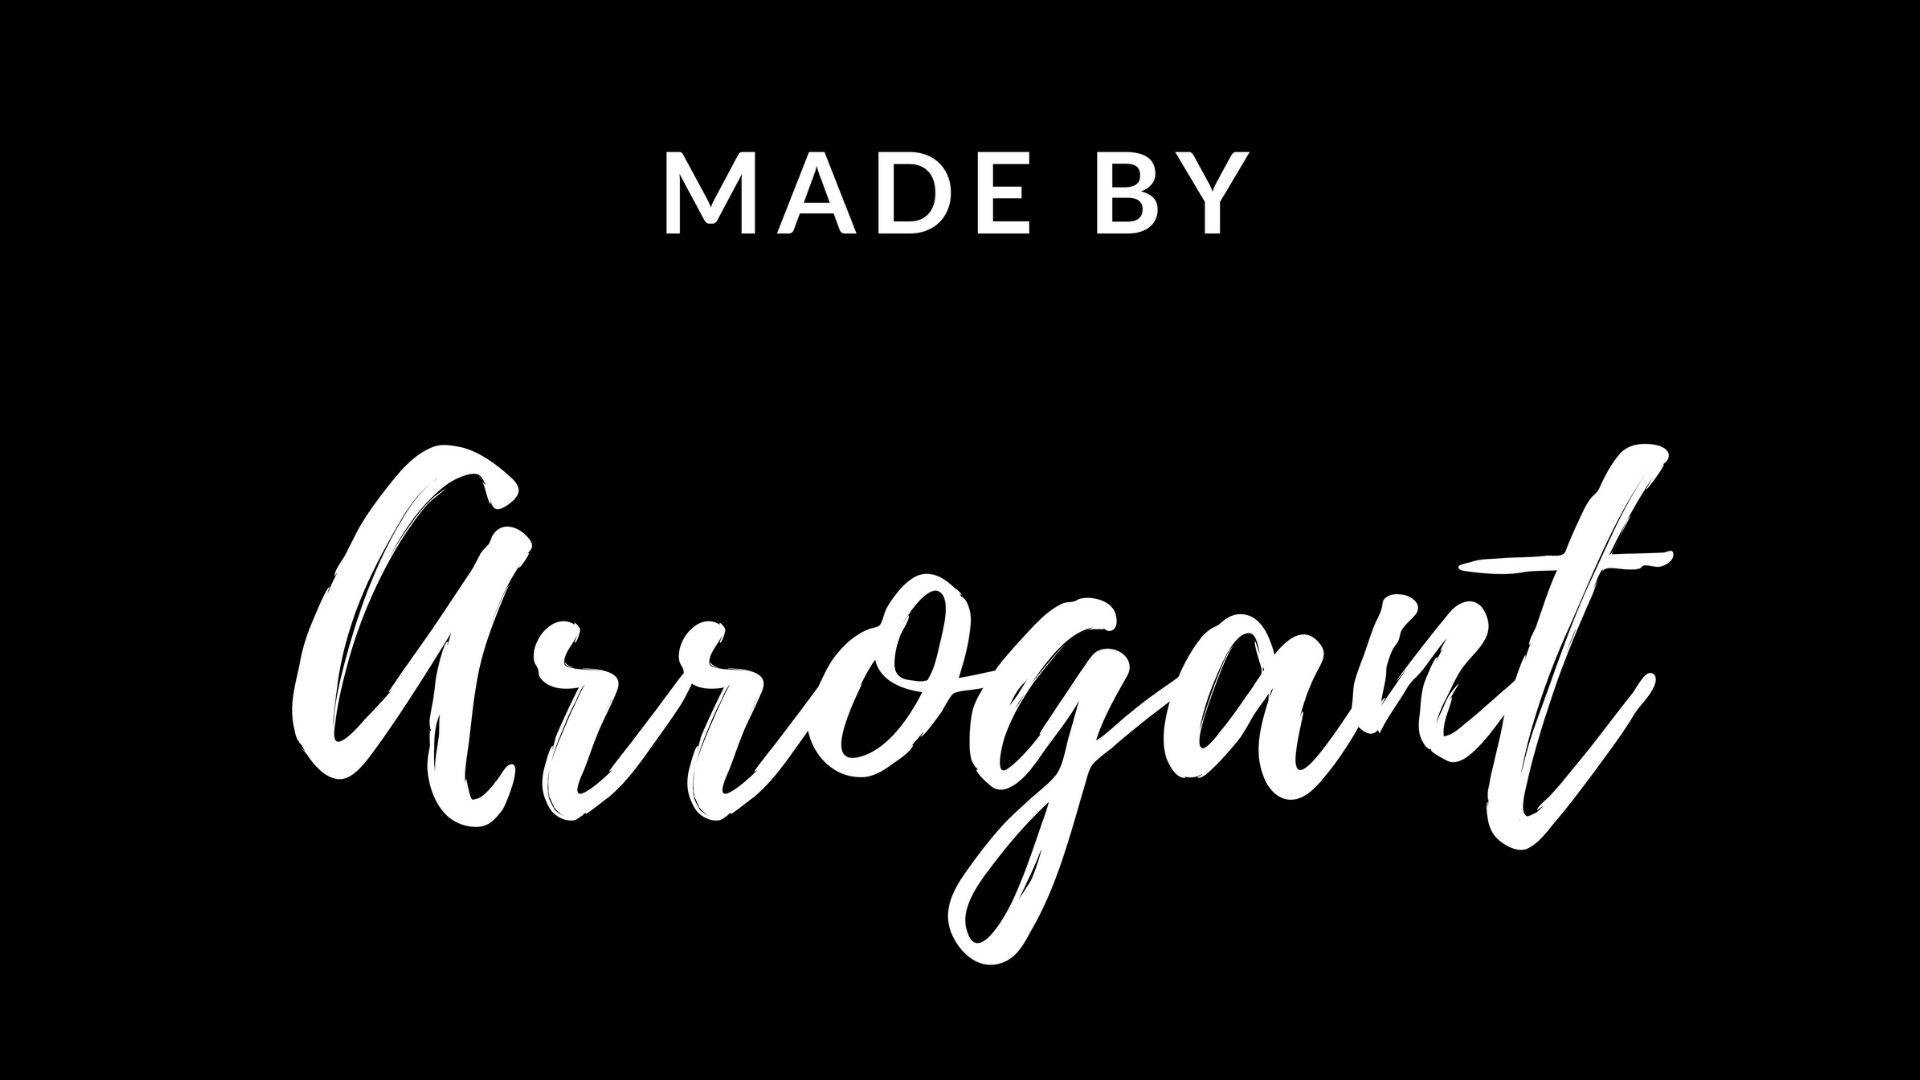 Made by Arrogant